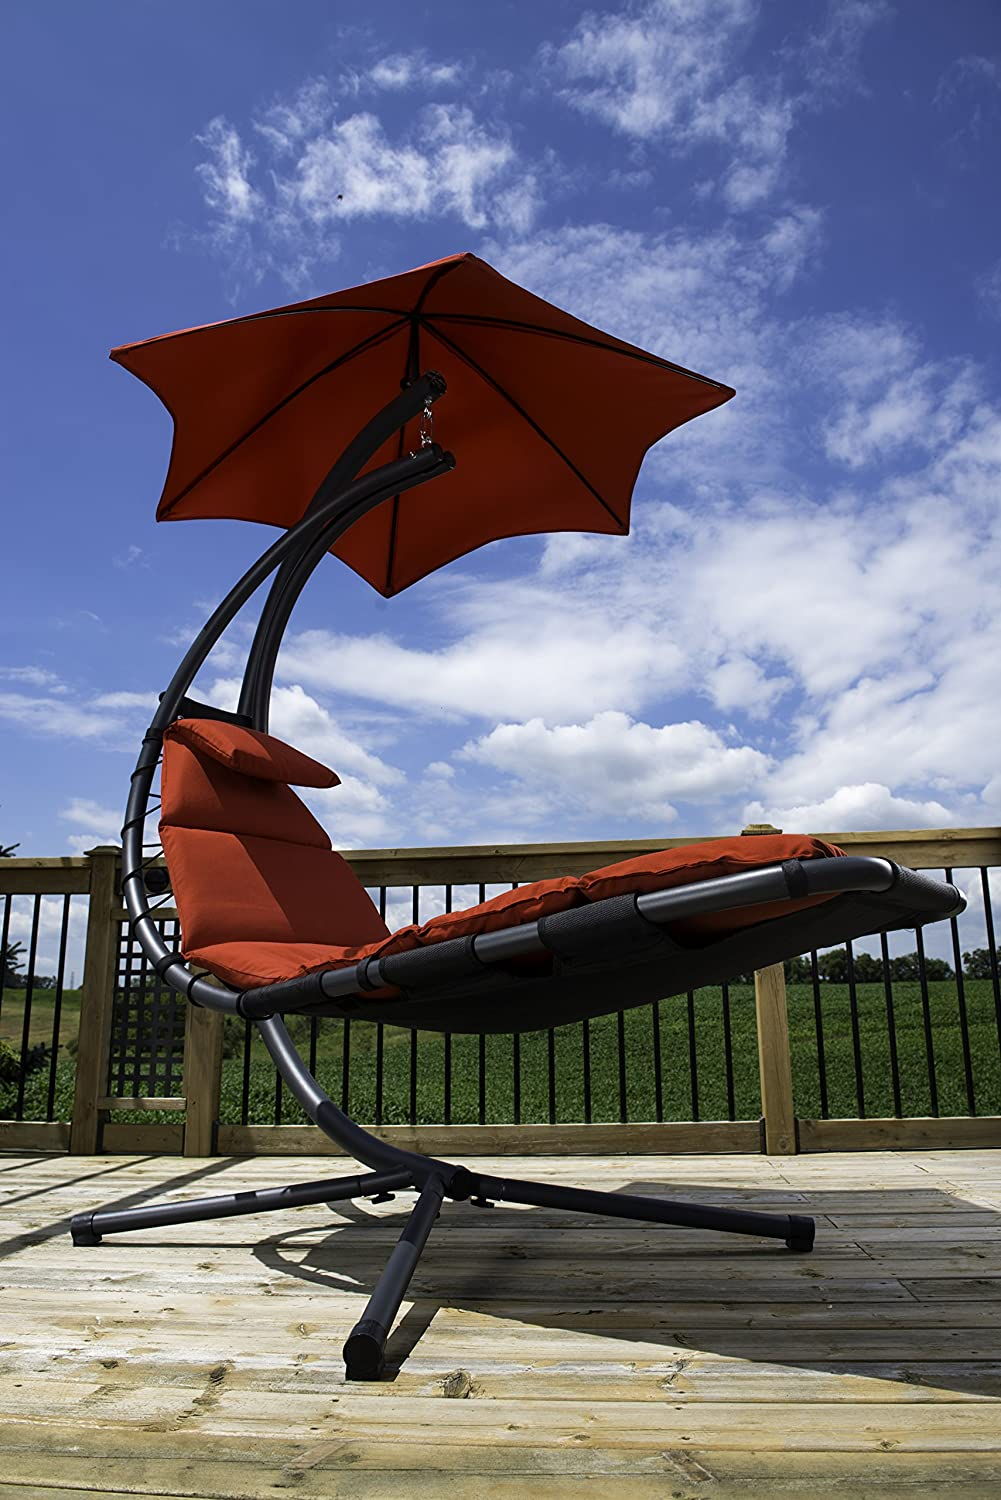 Vivere Original Dream Helicopter Chair - Cherry Red